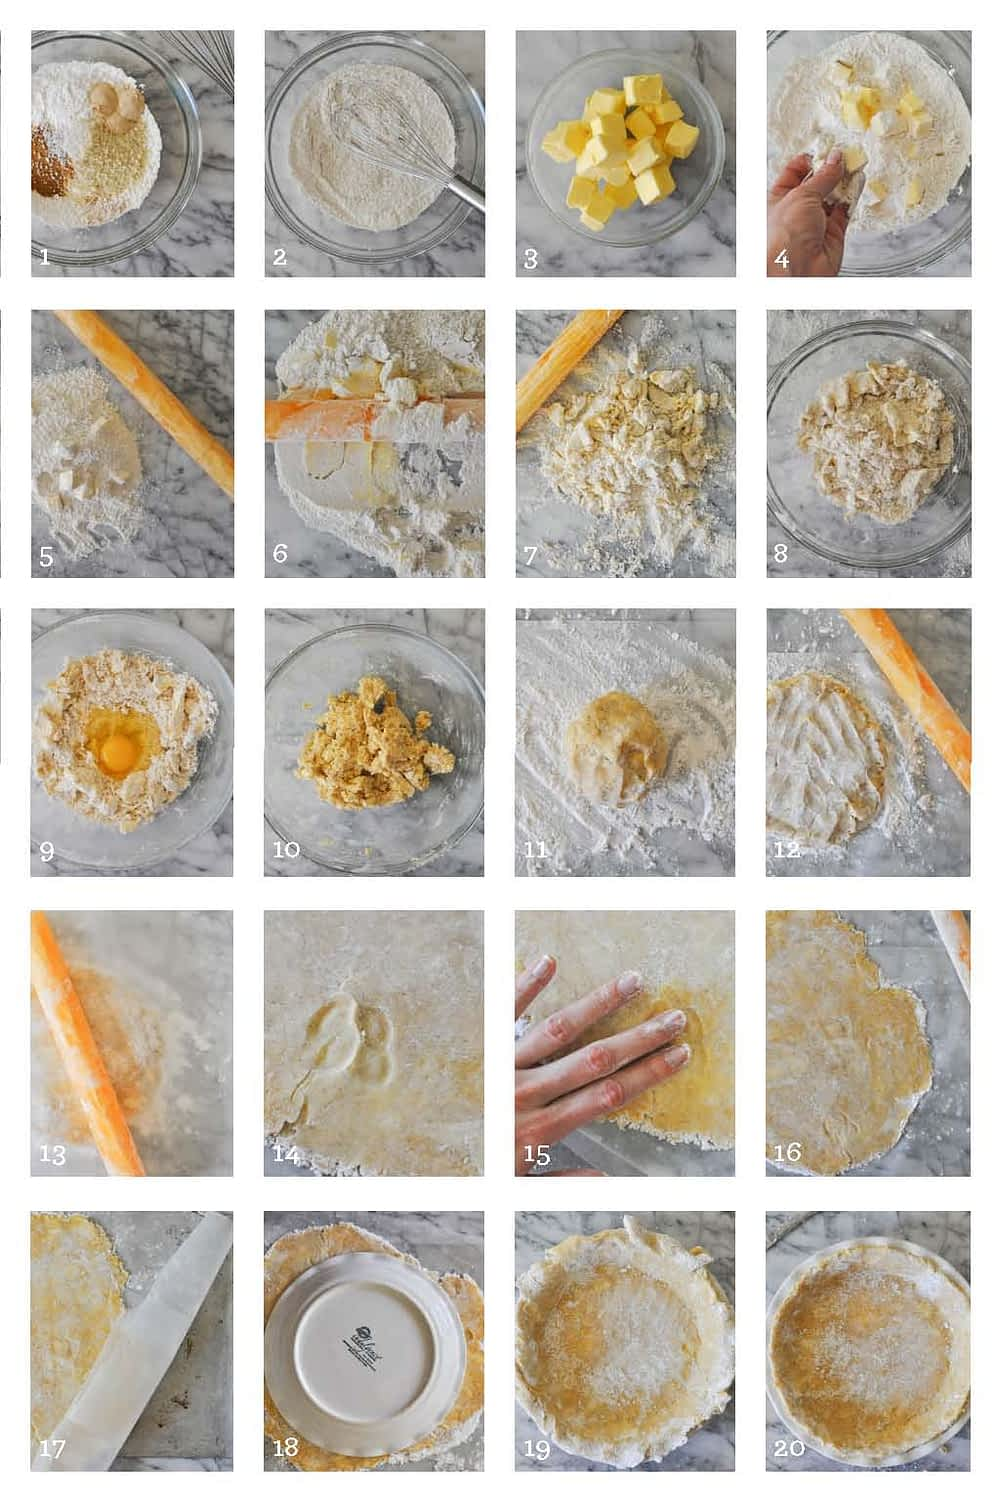 homemade gluten free Pie Crust Two Ways step by step image grid